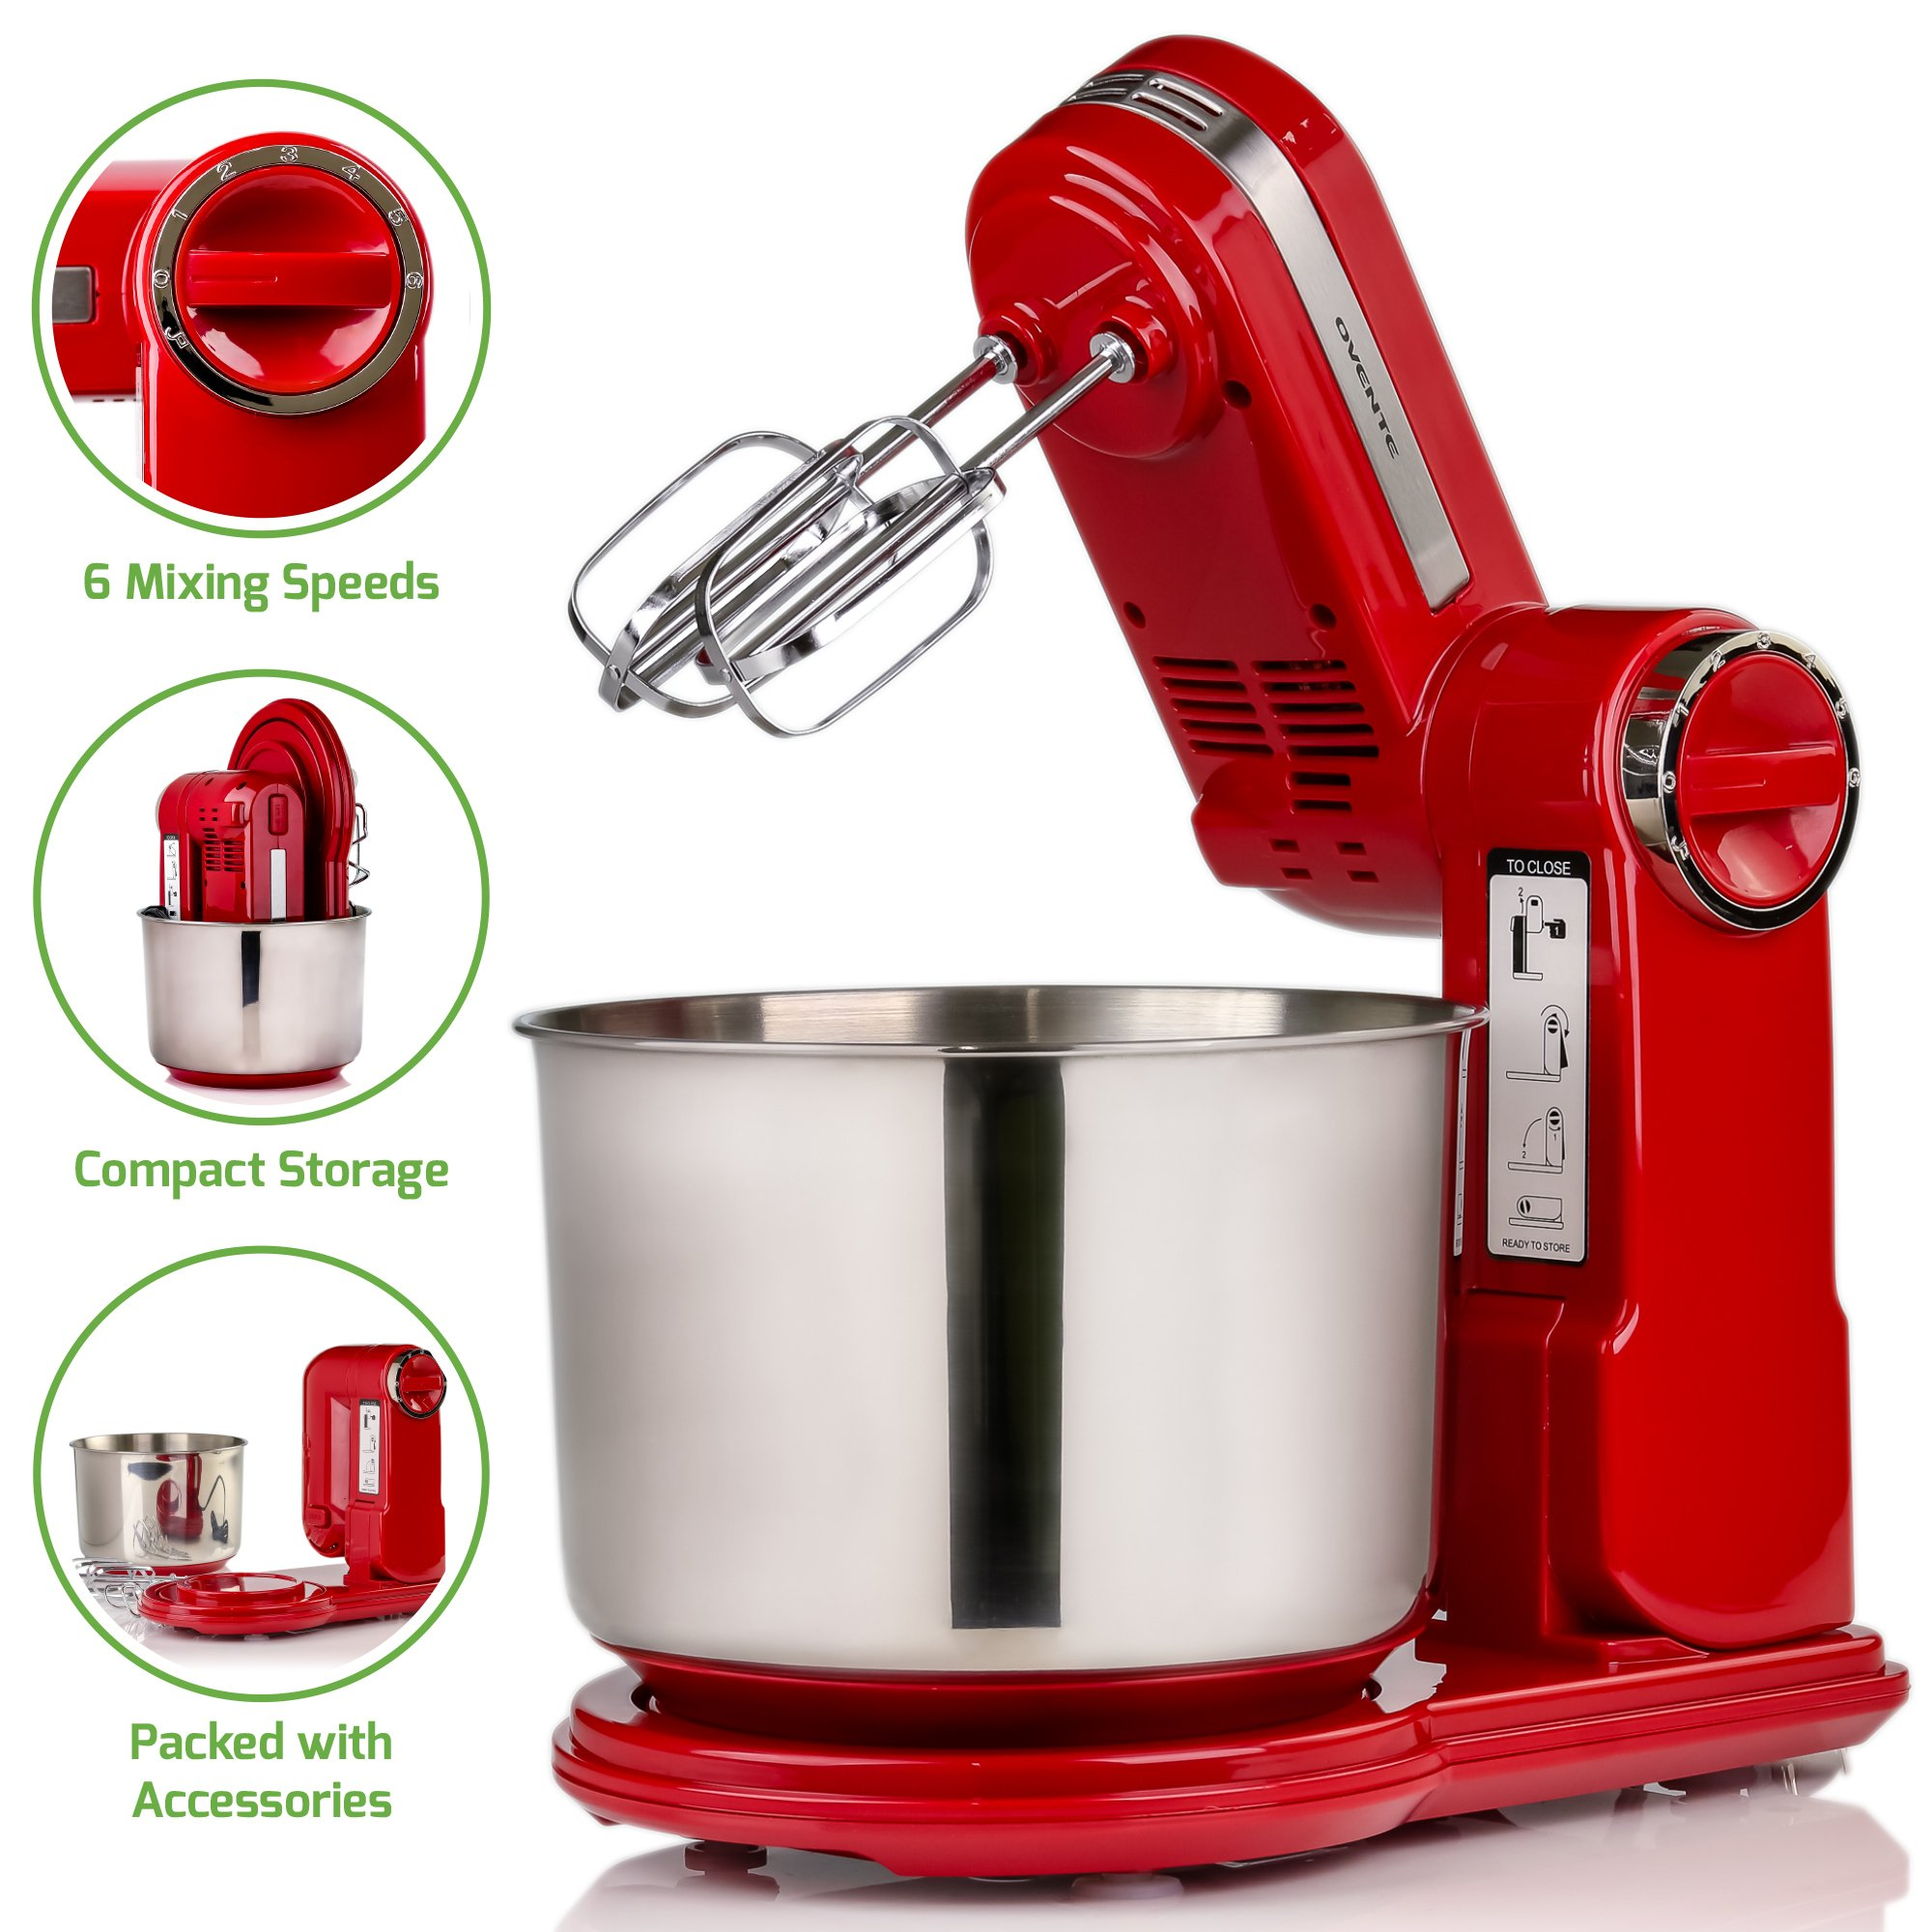 Ovente Professional Stand Mixer with 3.7 Quart Stainless Steel Mixing Bowl, 6 Mixing Speeds, Rotating Base, Includes Beaters, Dough Hooks, and Storage Stand, 300-Watts (SM890R - Red)